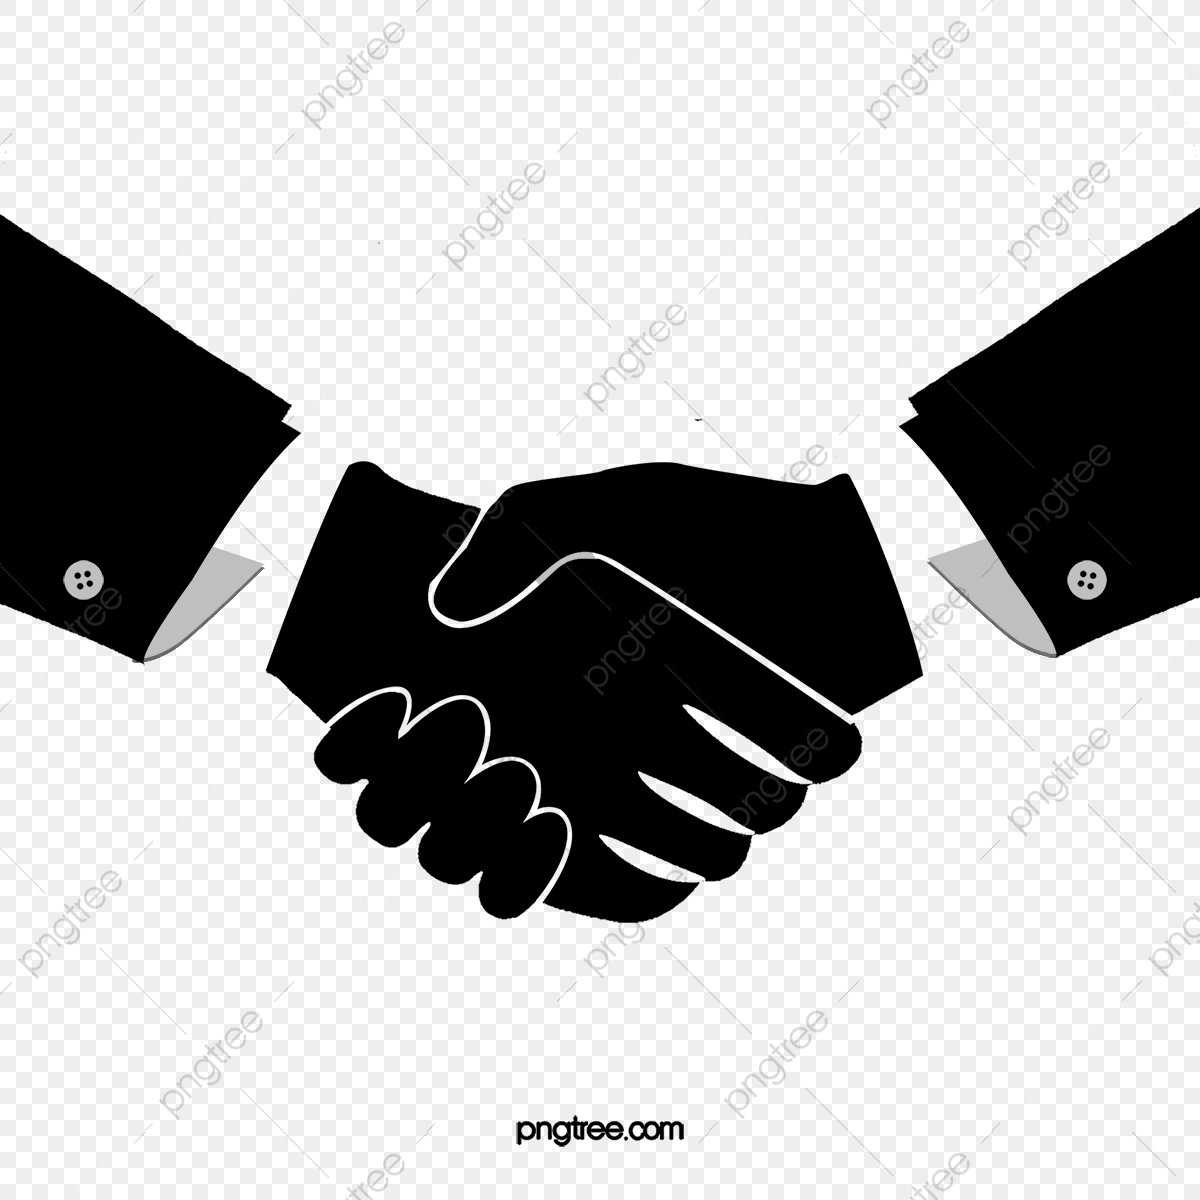 Handshake clipart file. Gesture commercial elements